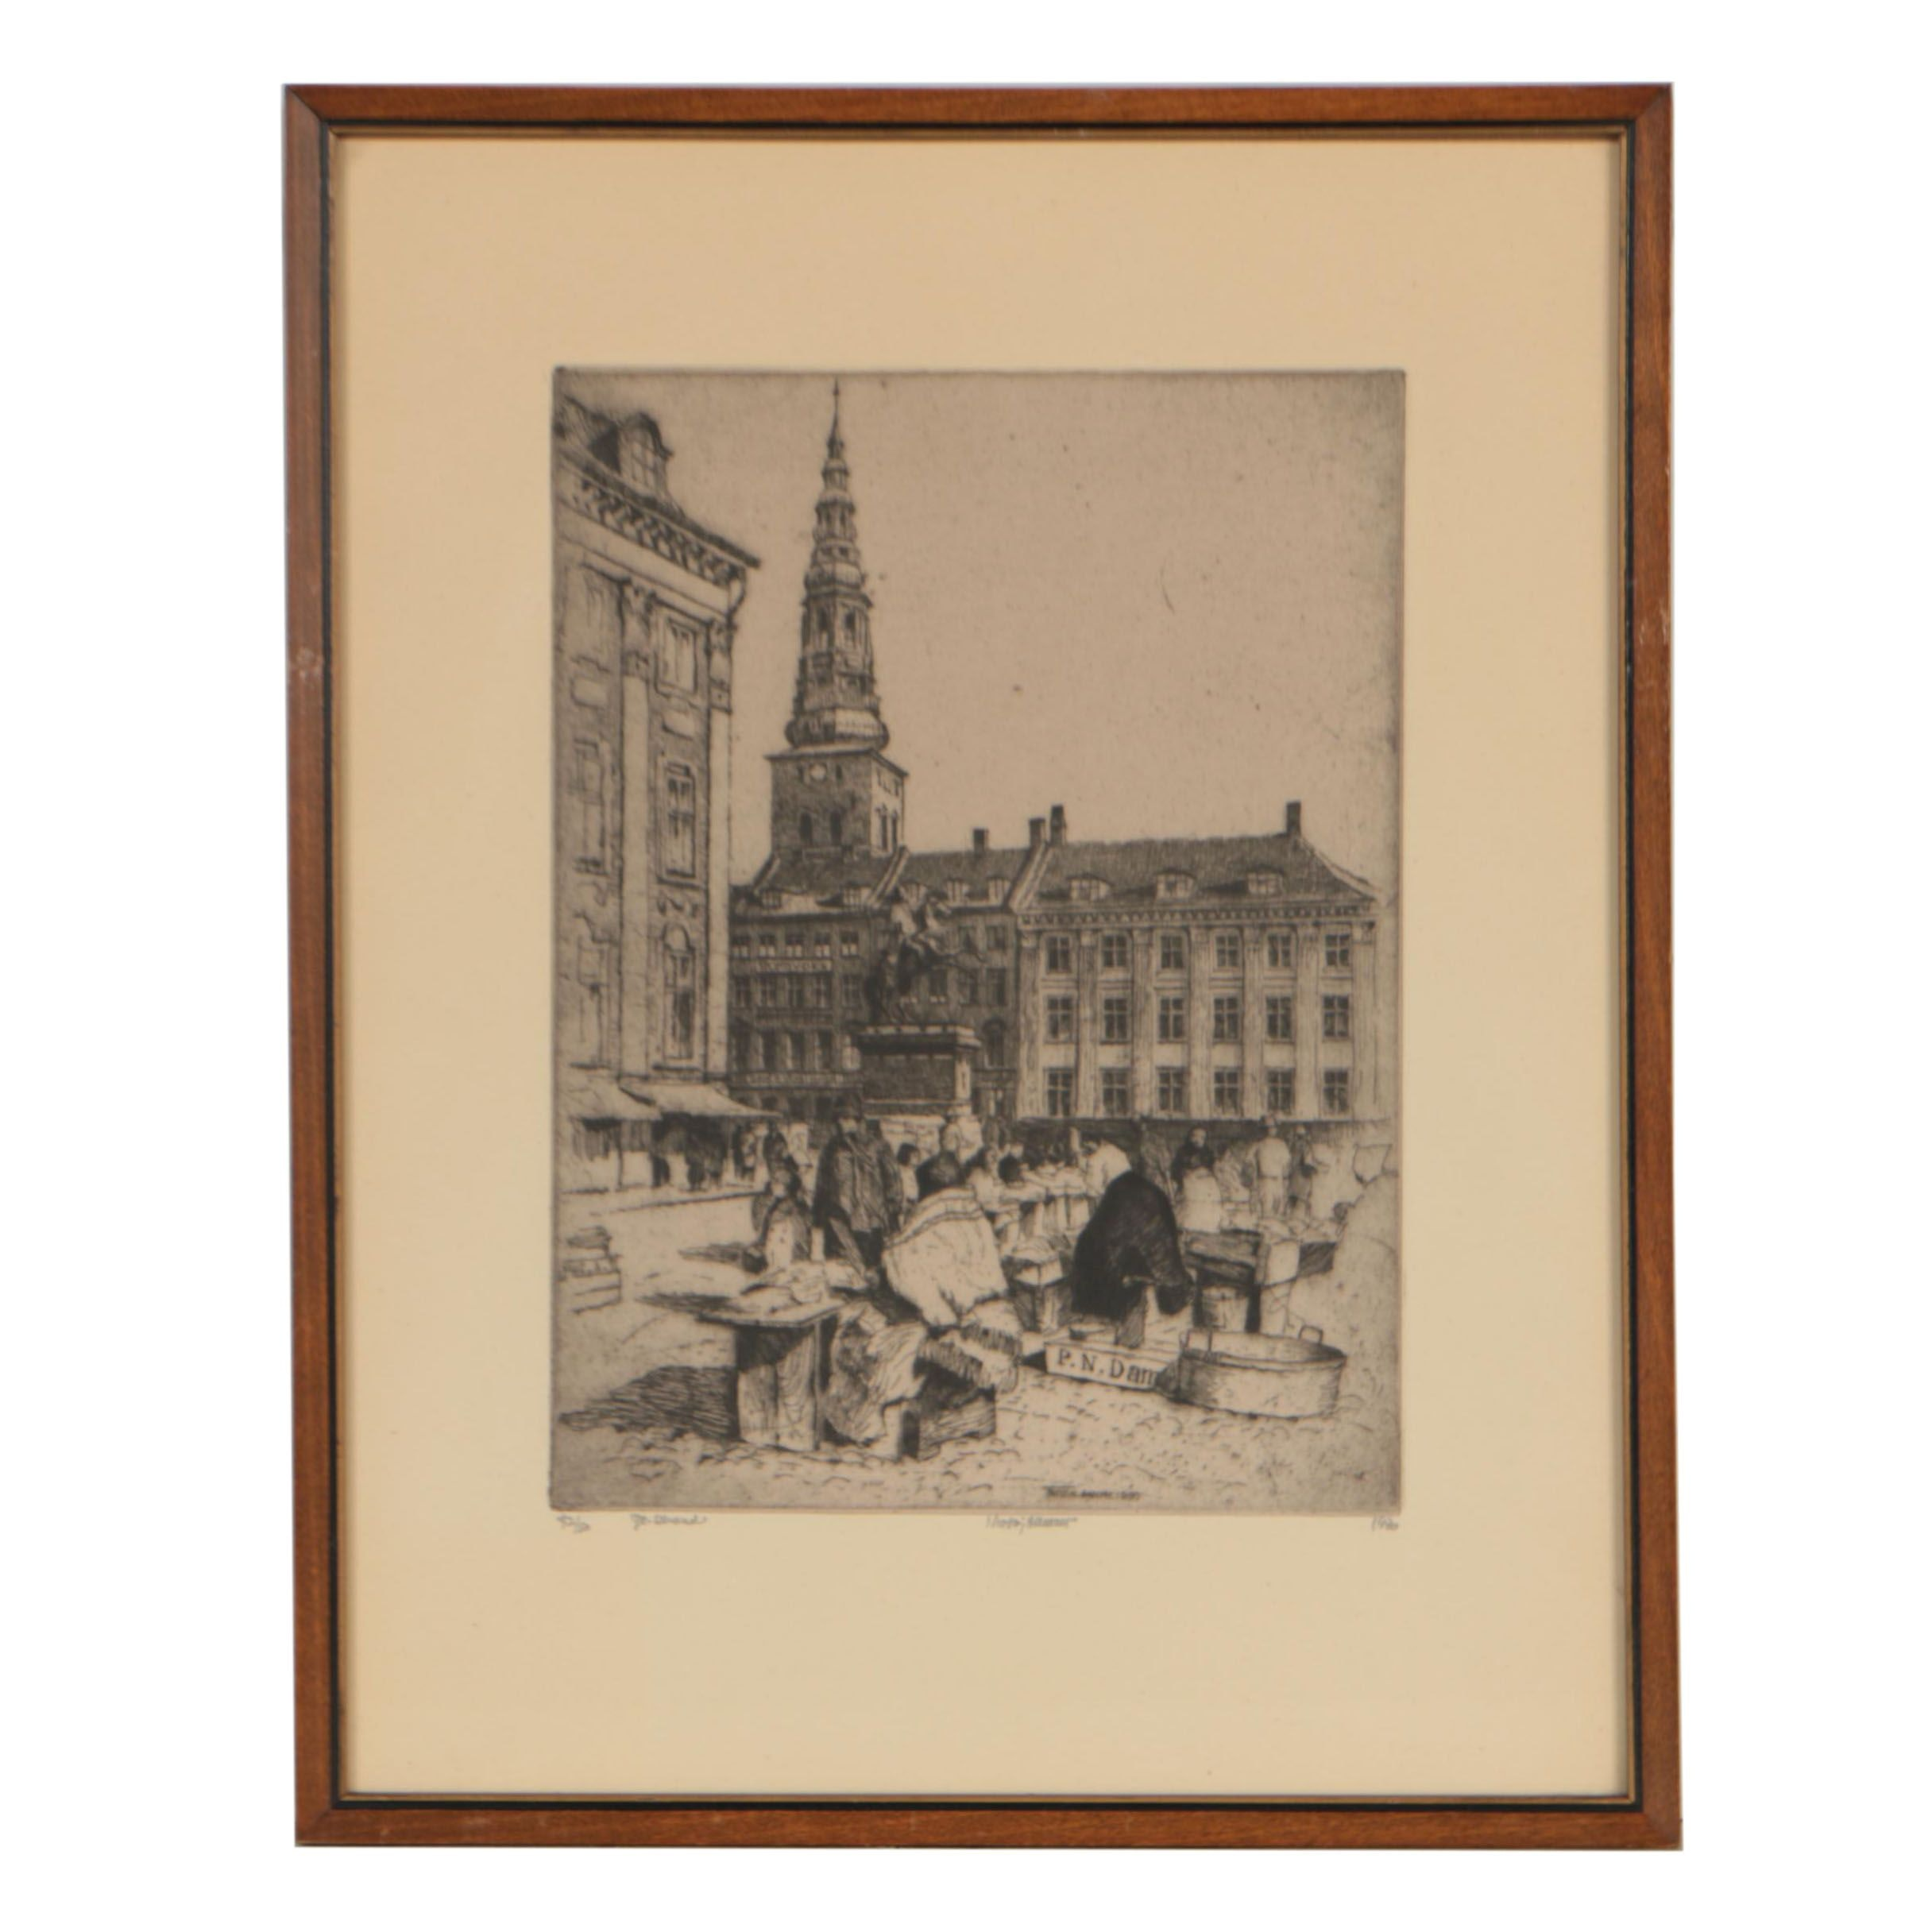 Nicolai Hammer 1930 Etching of a Town Square